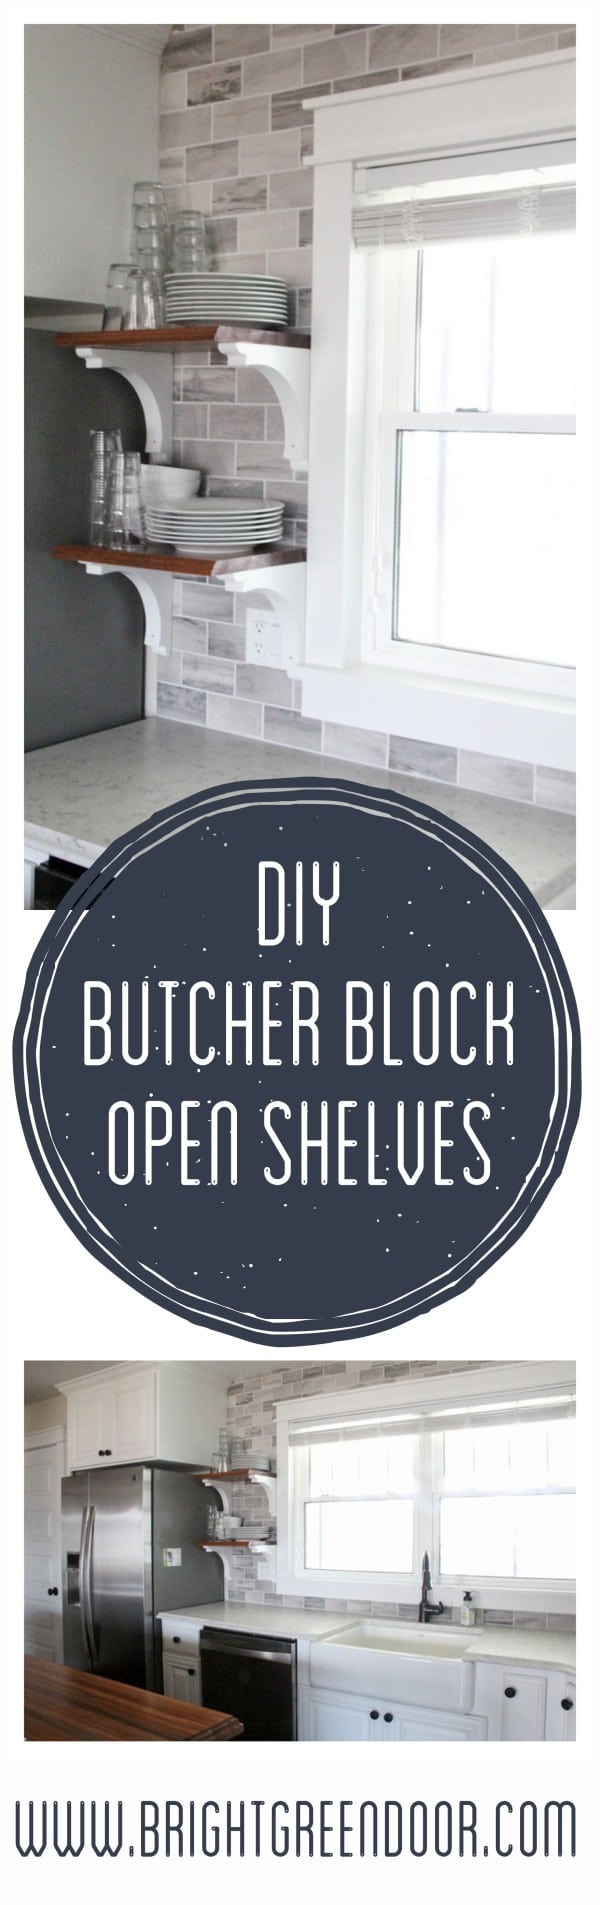 DIY Butcher Block Kitchen Open Shelving